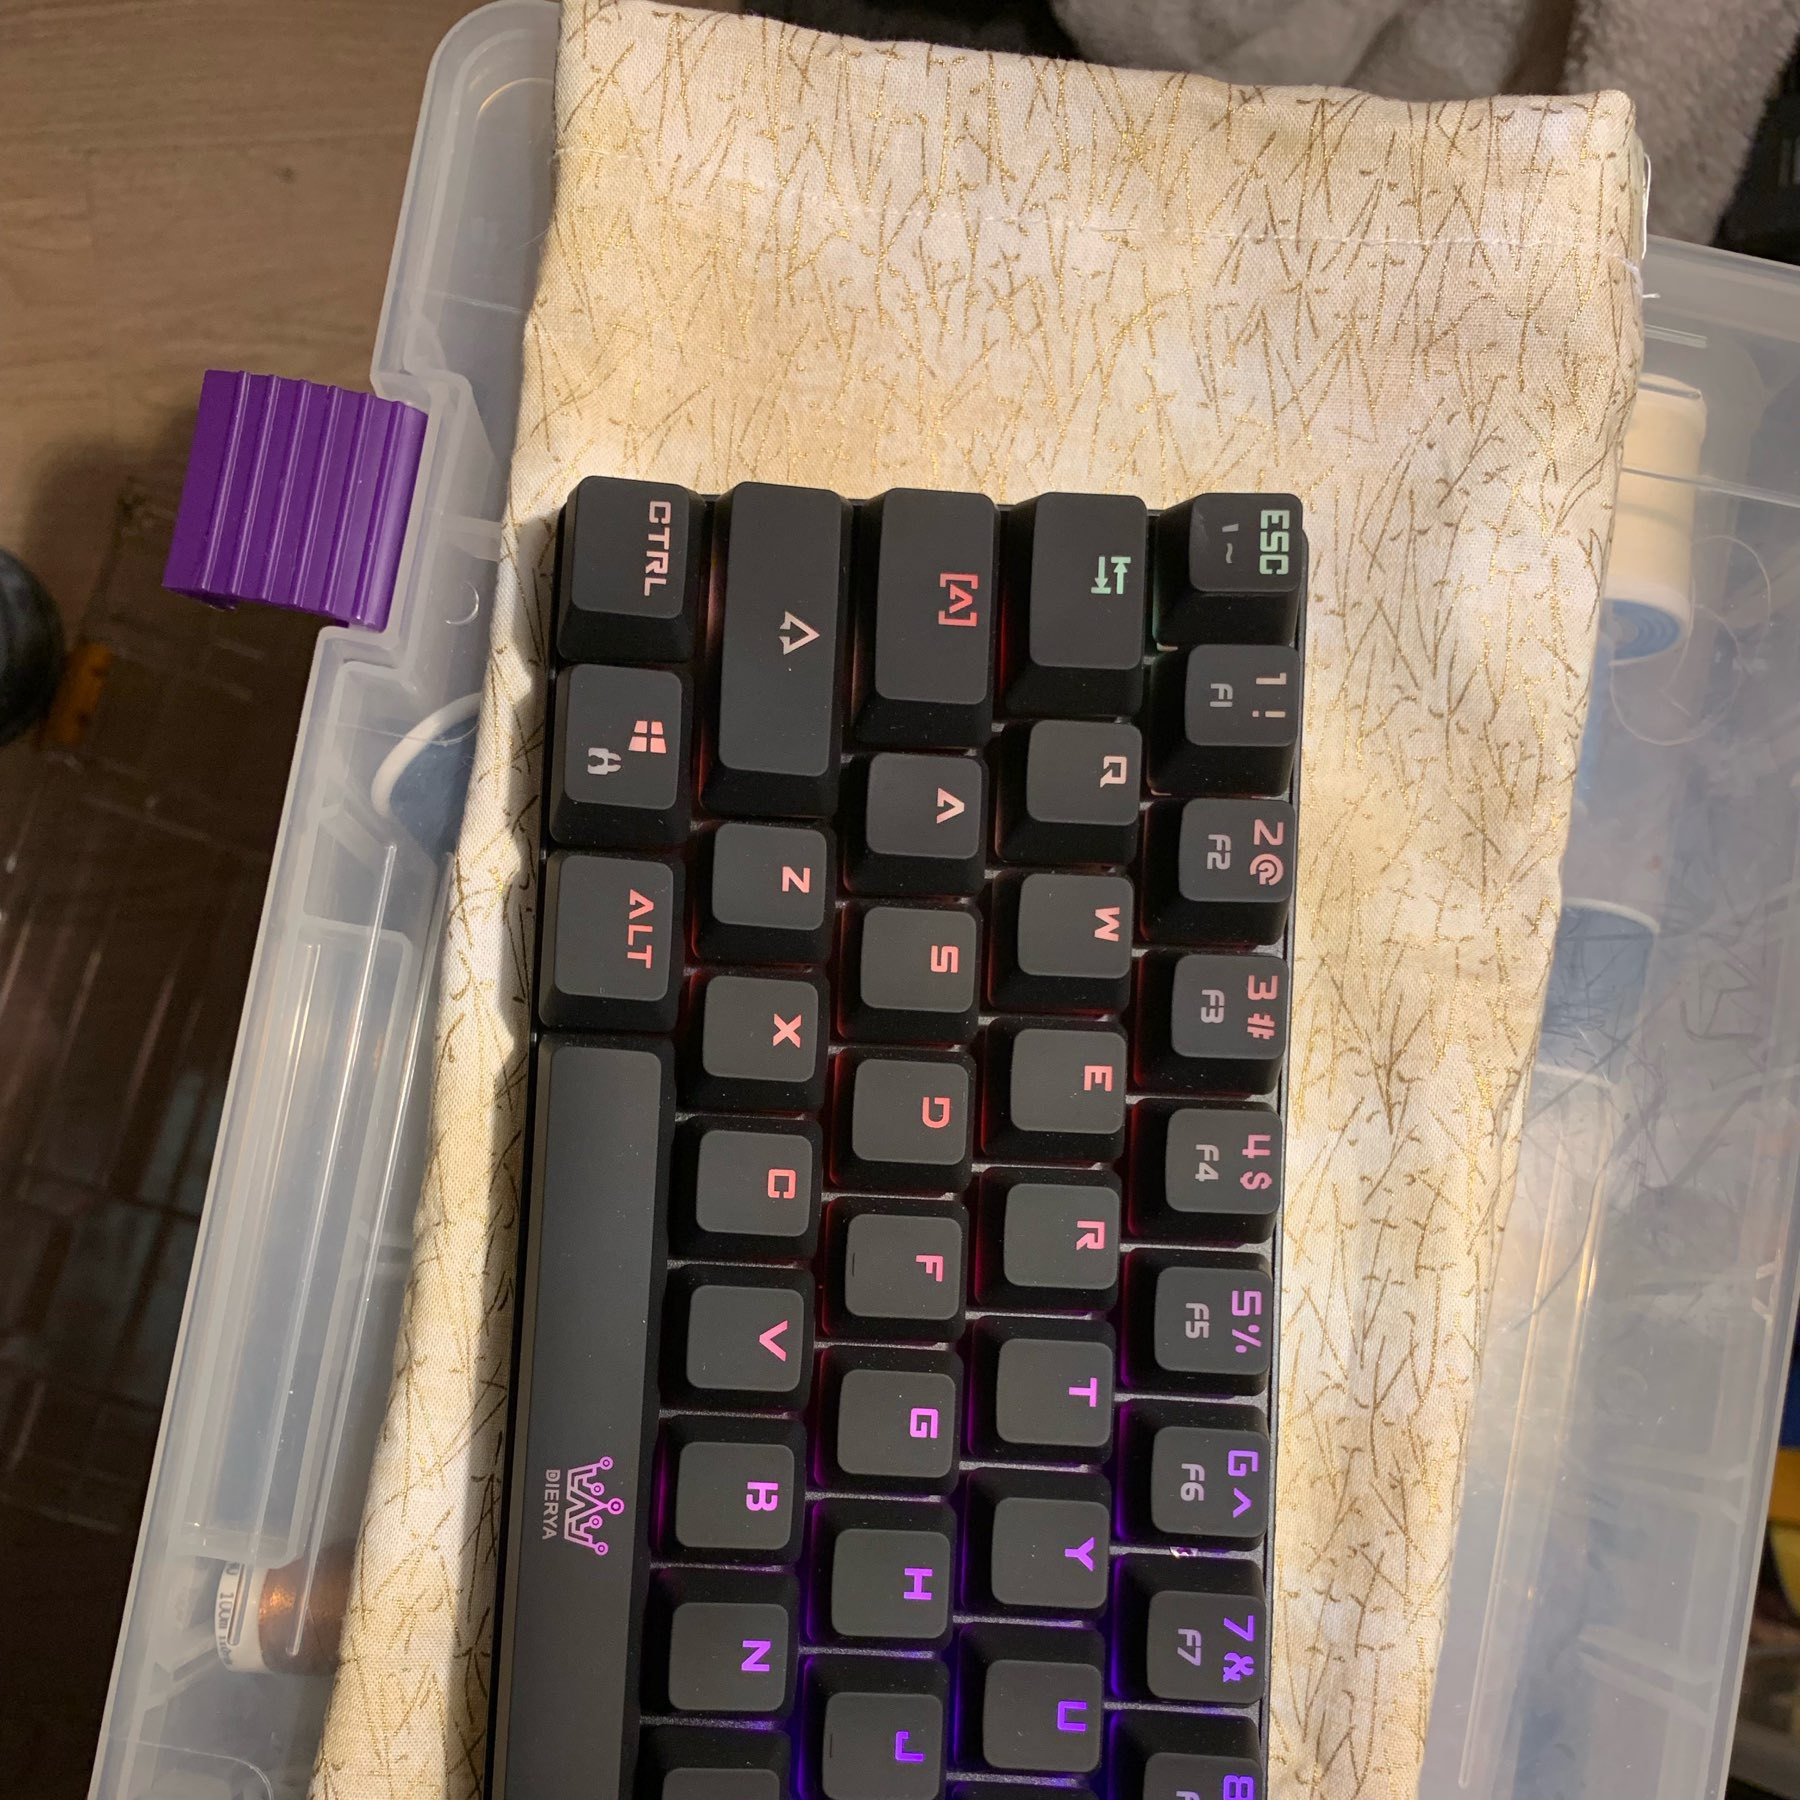 keyboard on cover